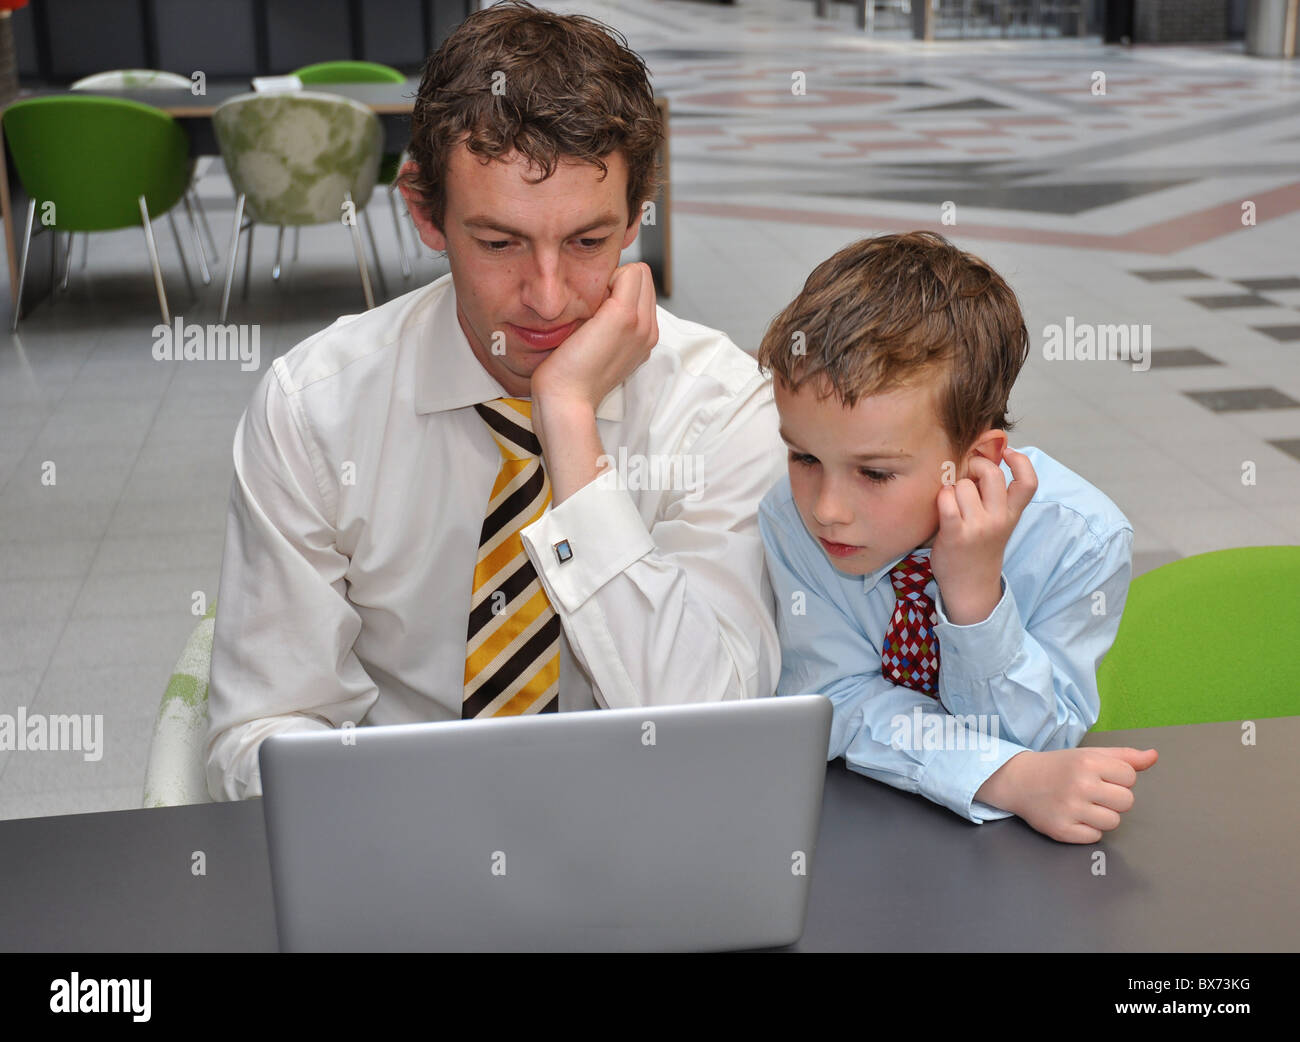 Men preparing presentation for the board - Stock Image